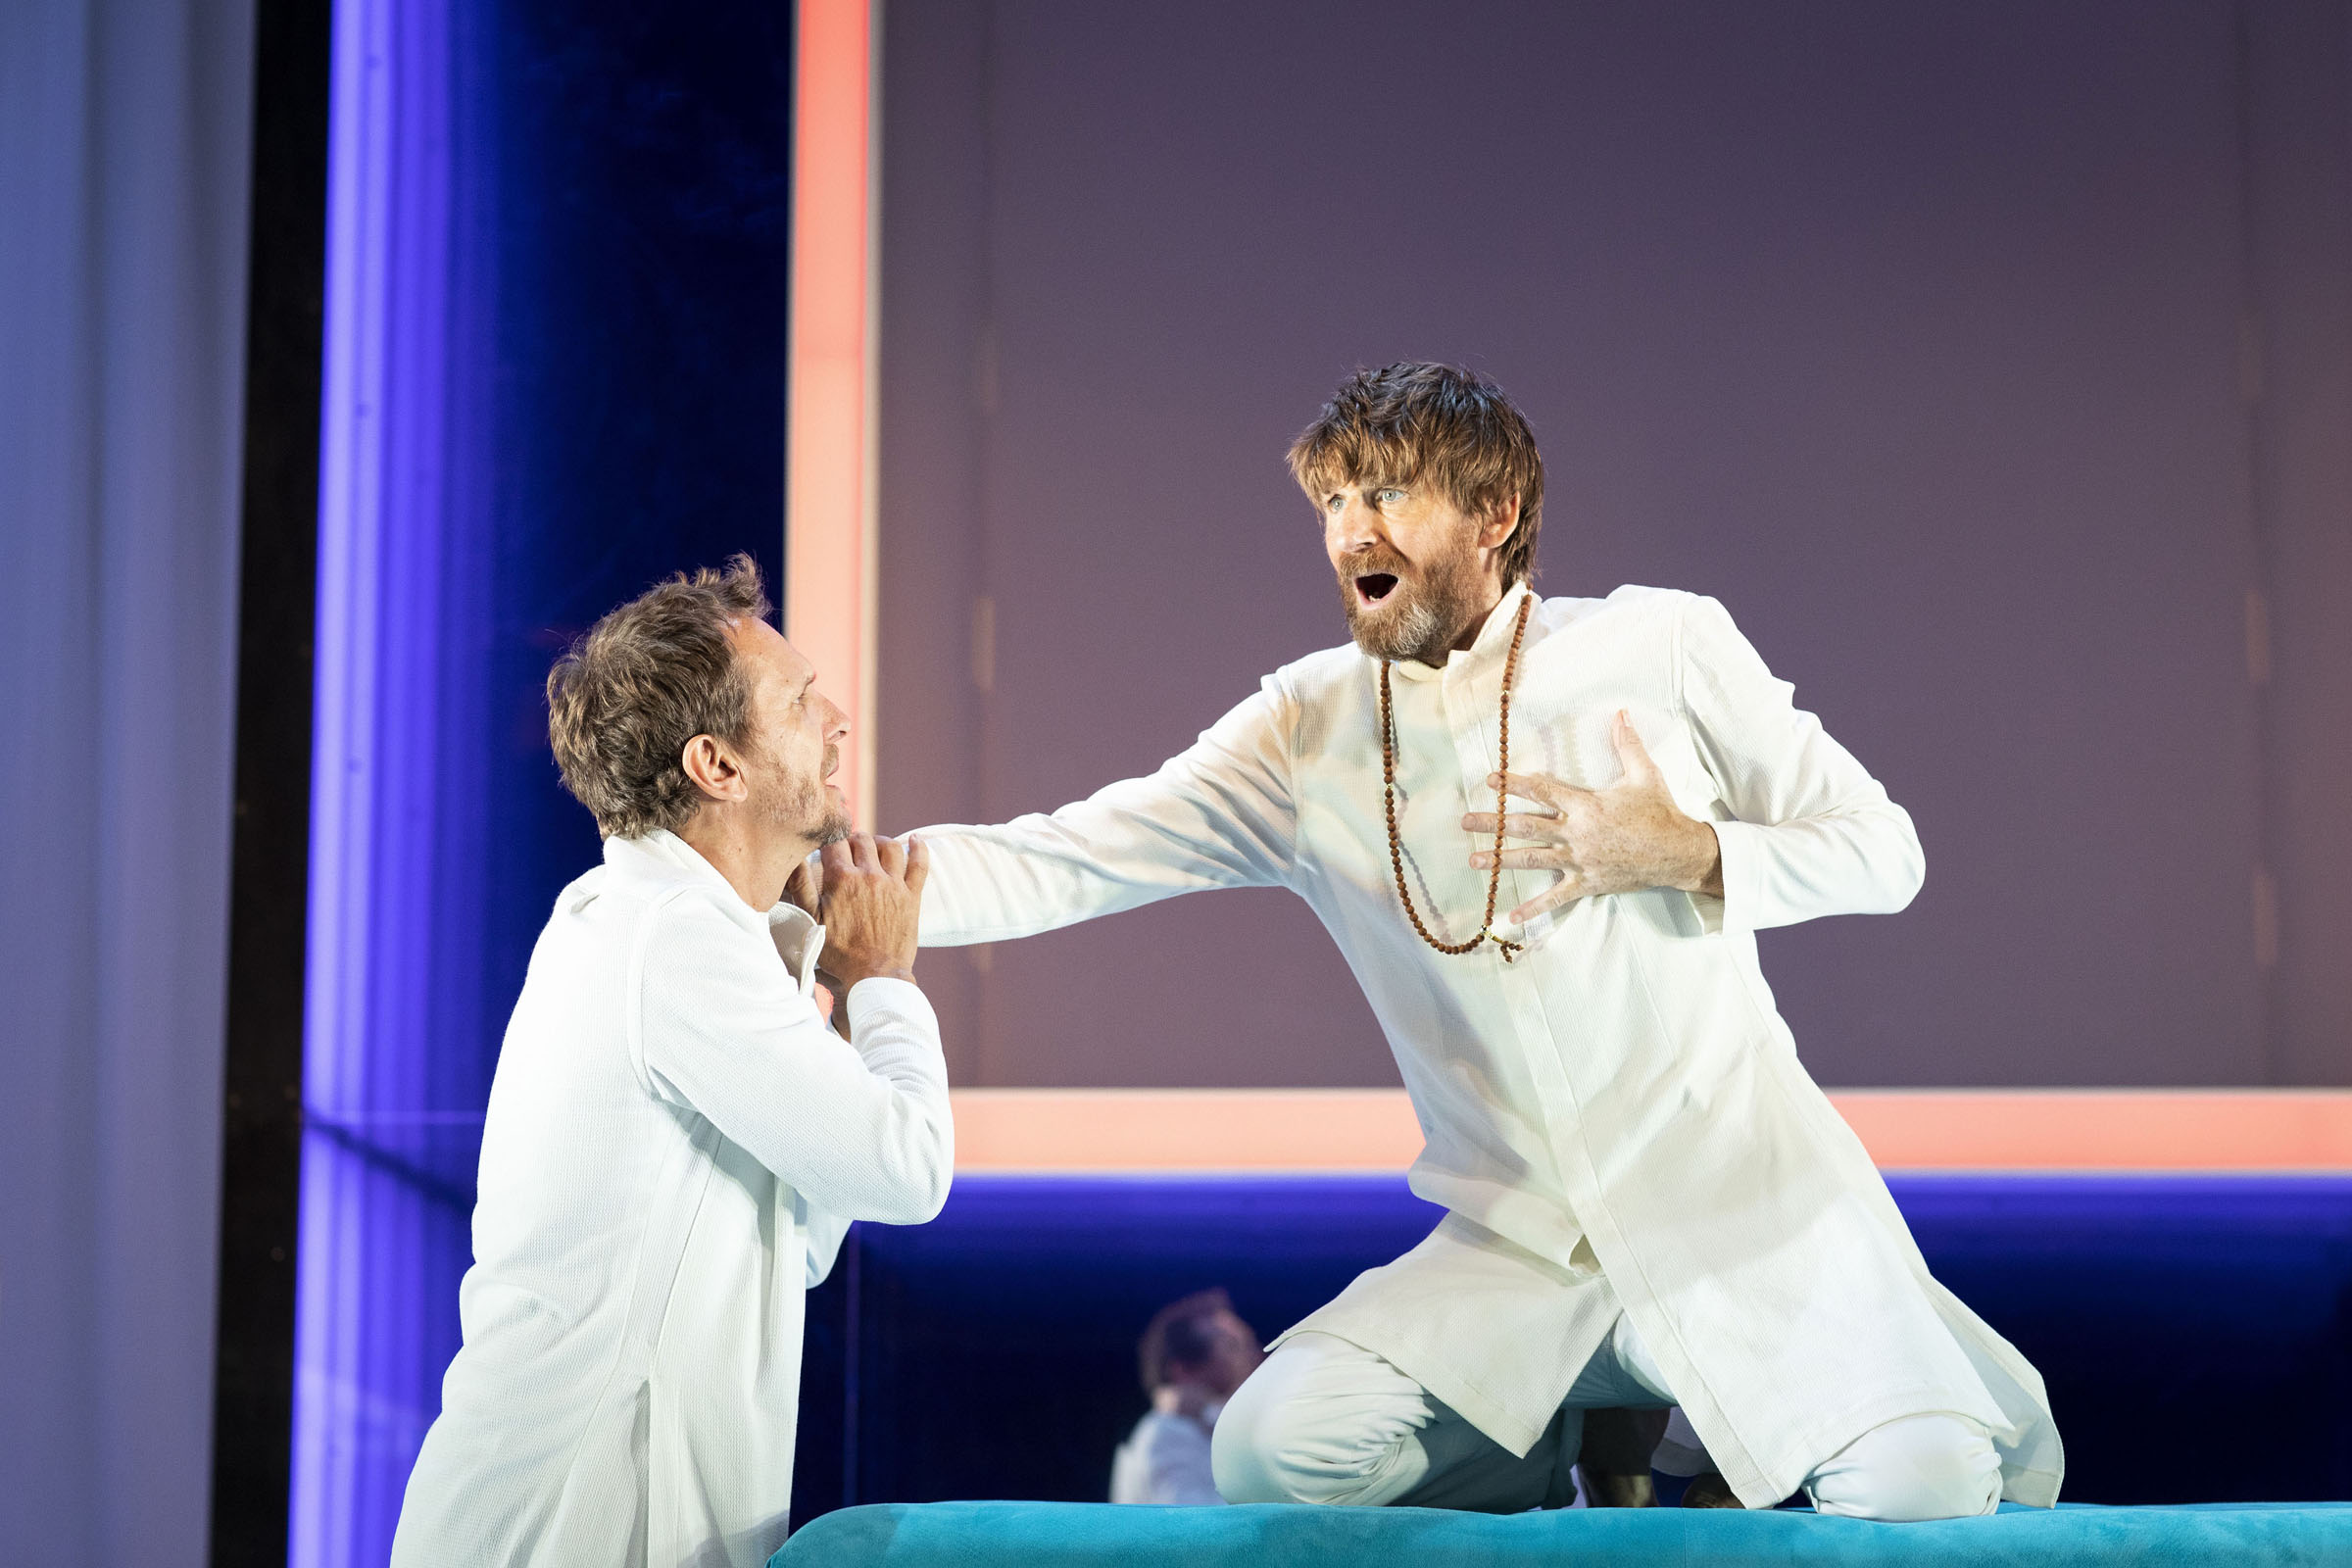 Sebastian Roche as Orgon, and Paul Anderson as Tartuffe, in Tartuffe